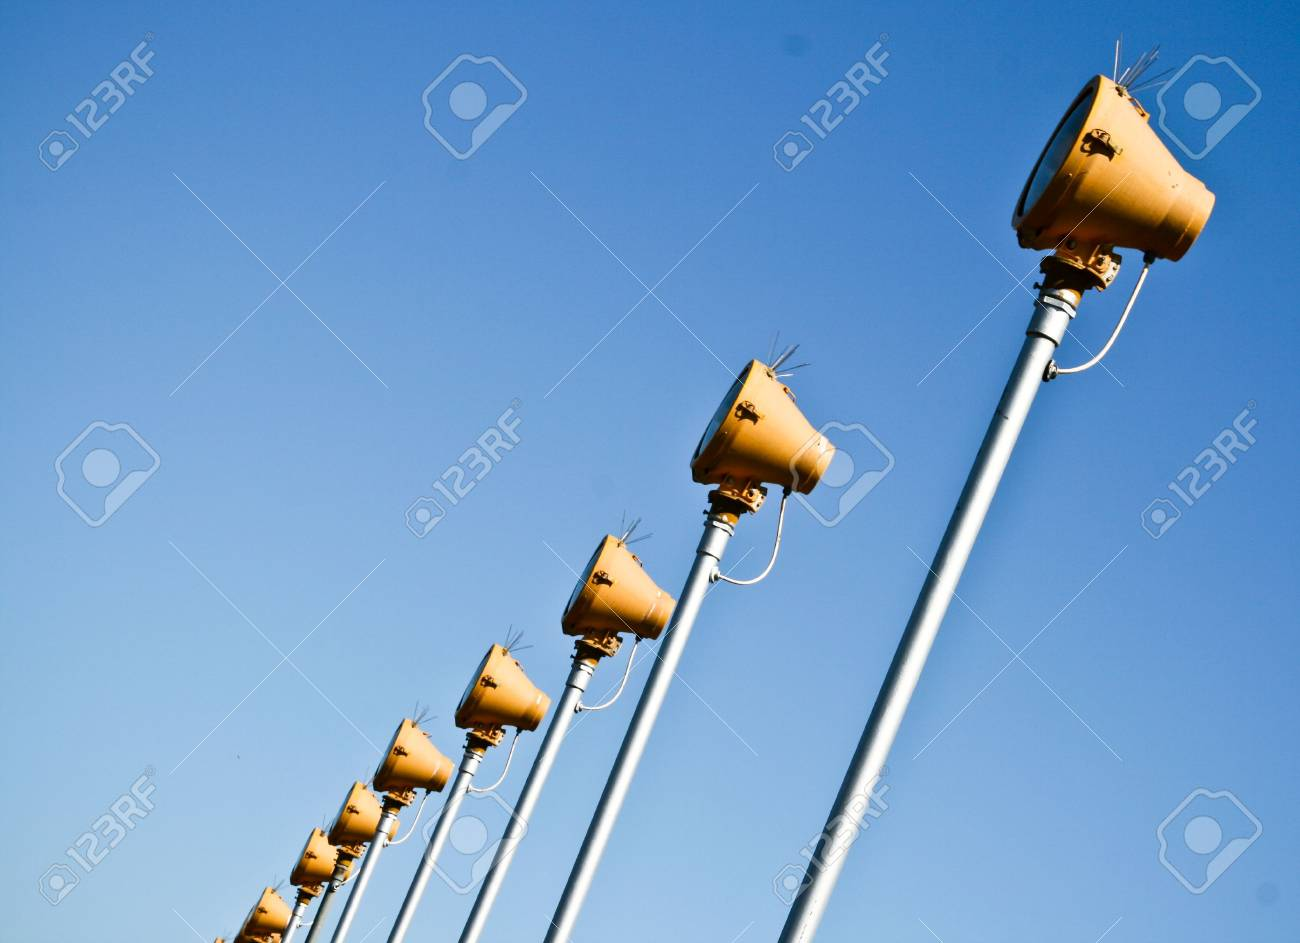 Alignment Of Several Light Projectors On A Blue Sky Background Stock Photo - 5370559